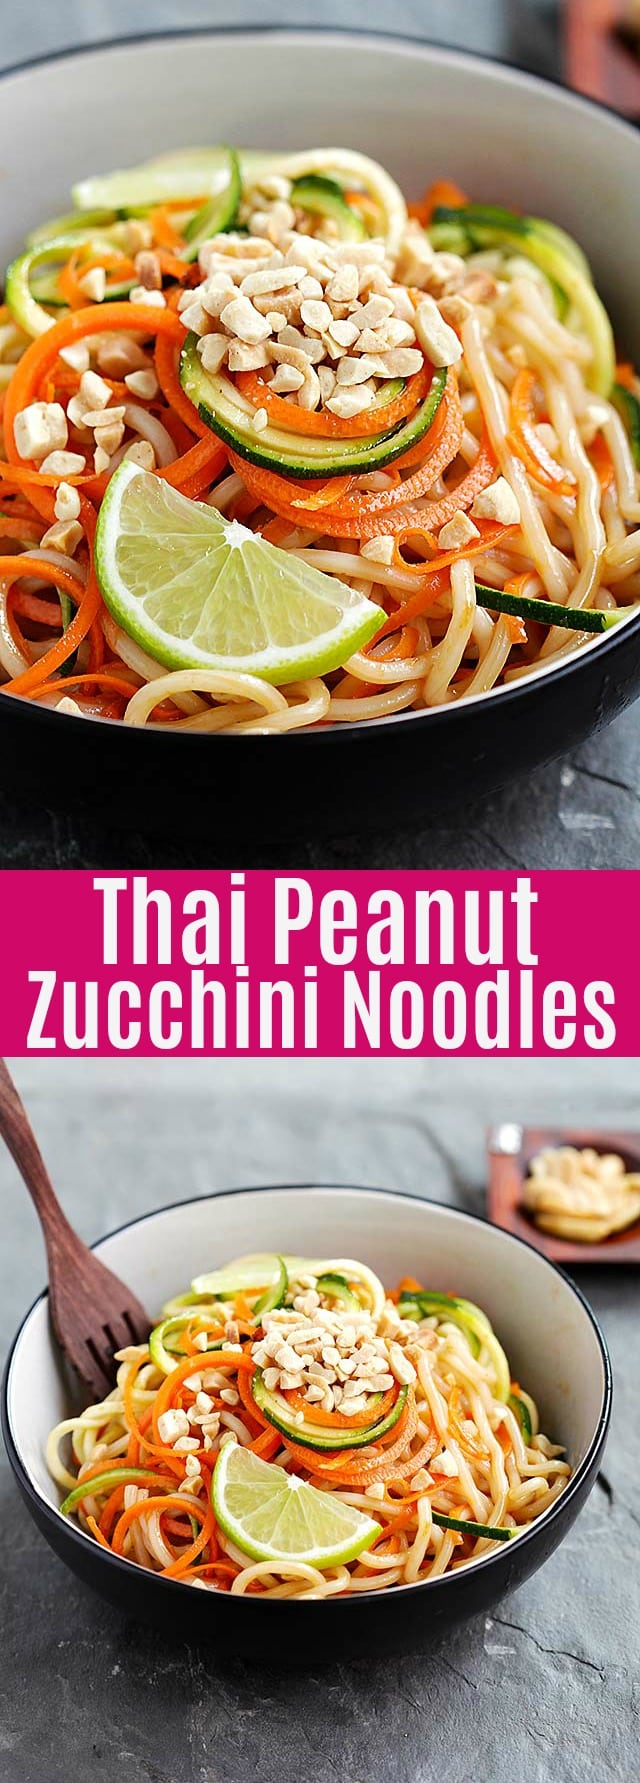 Thai Peanut  Zucchini Noodles - easy and healthy recipe with veggie noodles in mouthwatering Thai peanut sauce. This recipe is delicious and takes 15 mins to make.